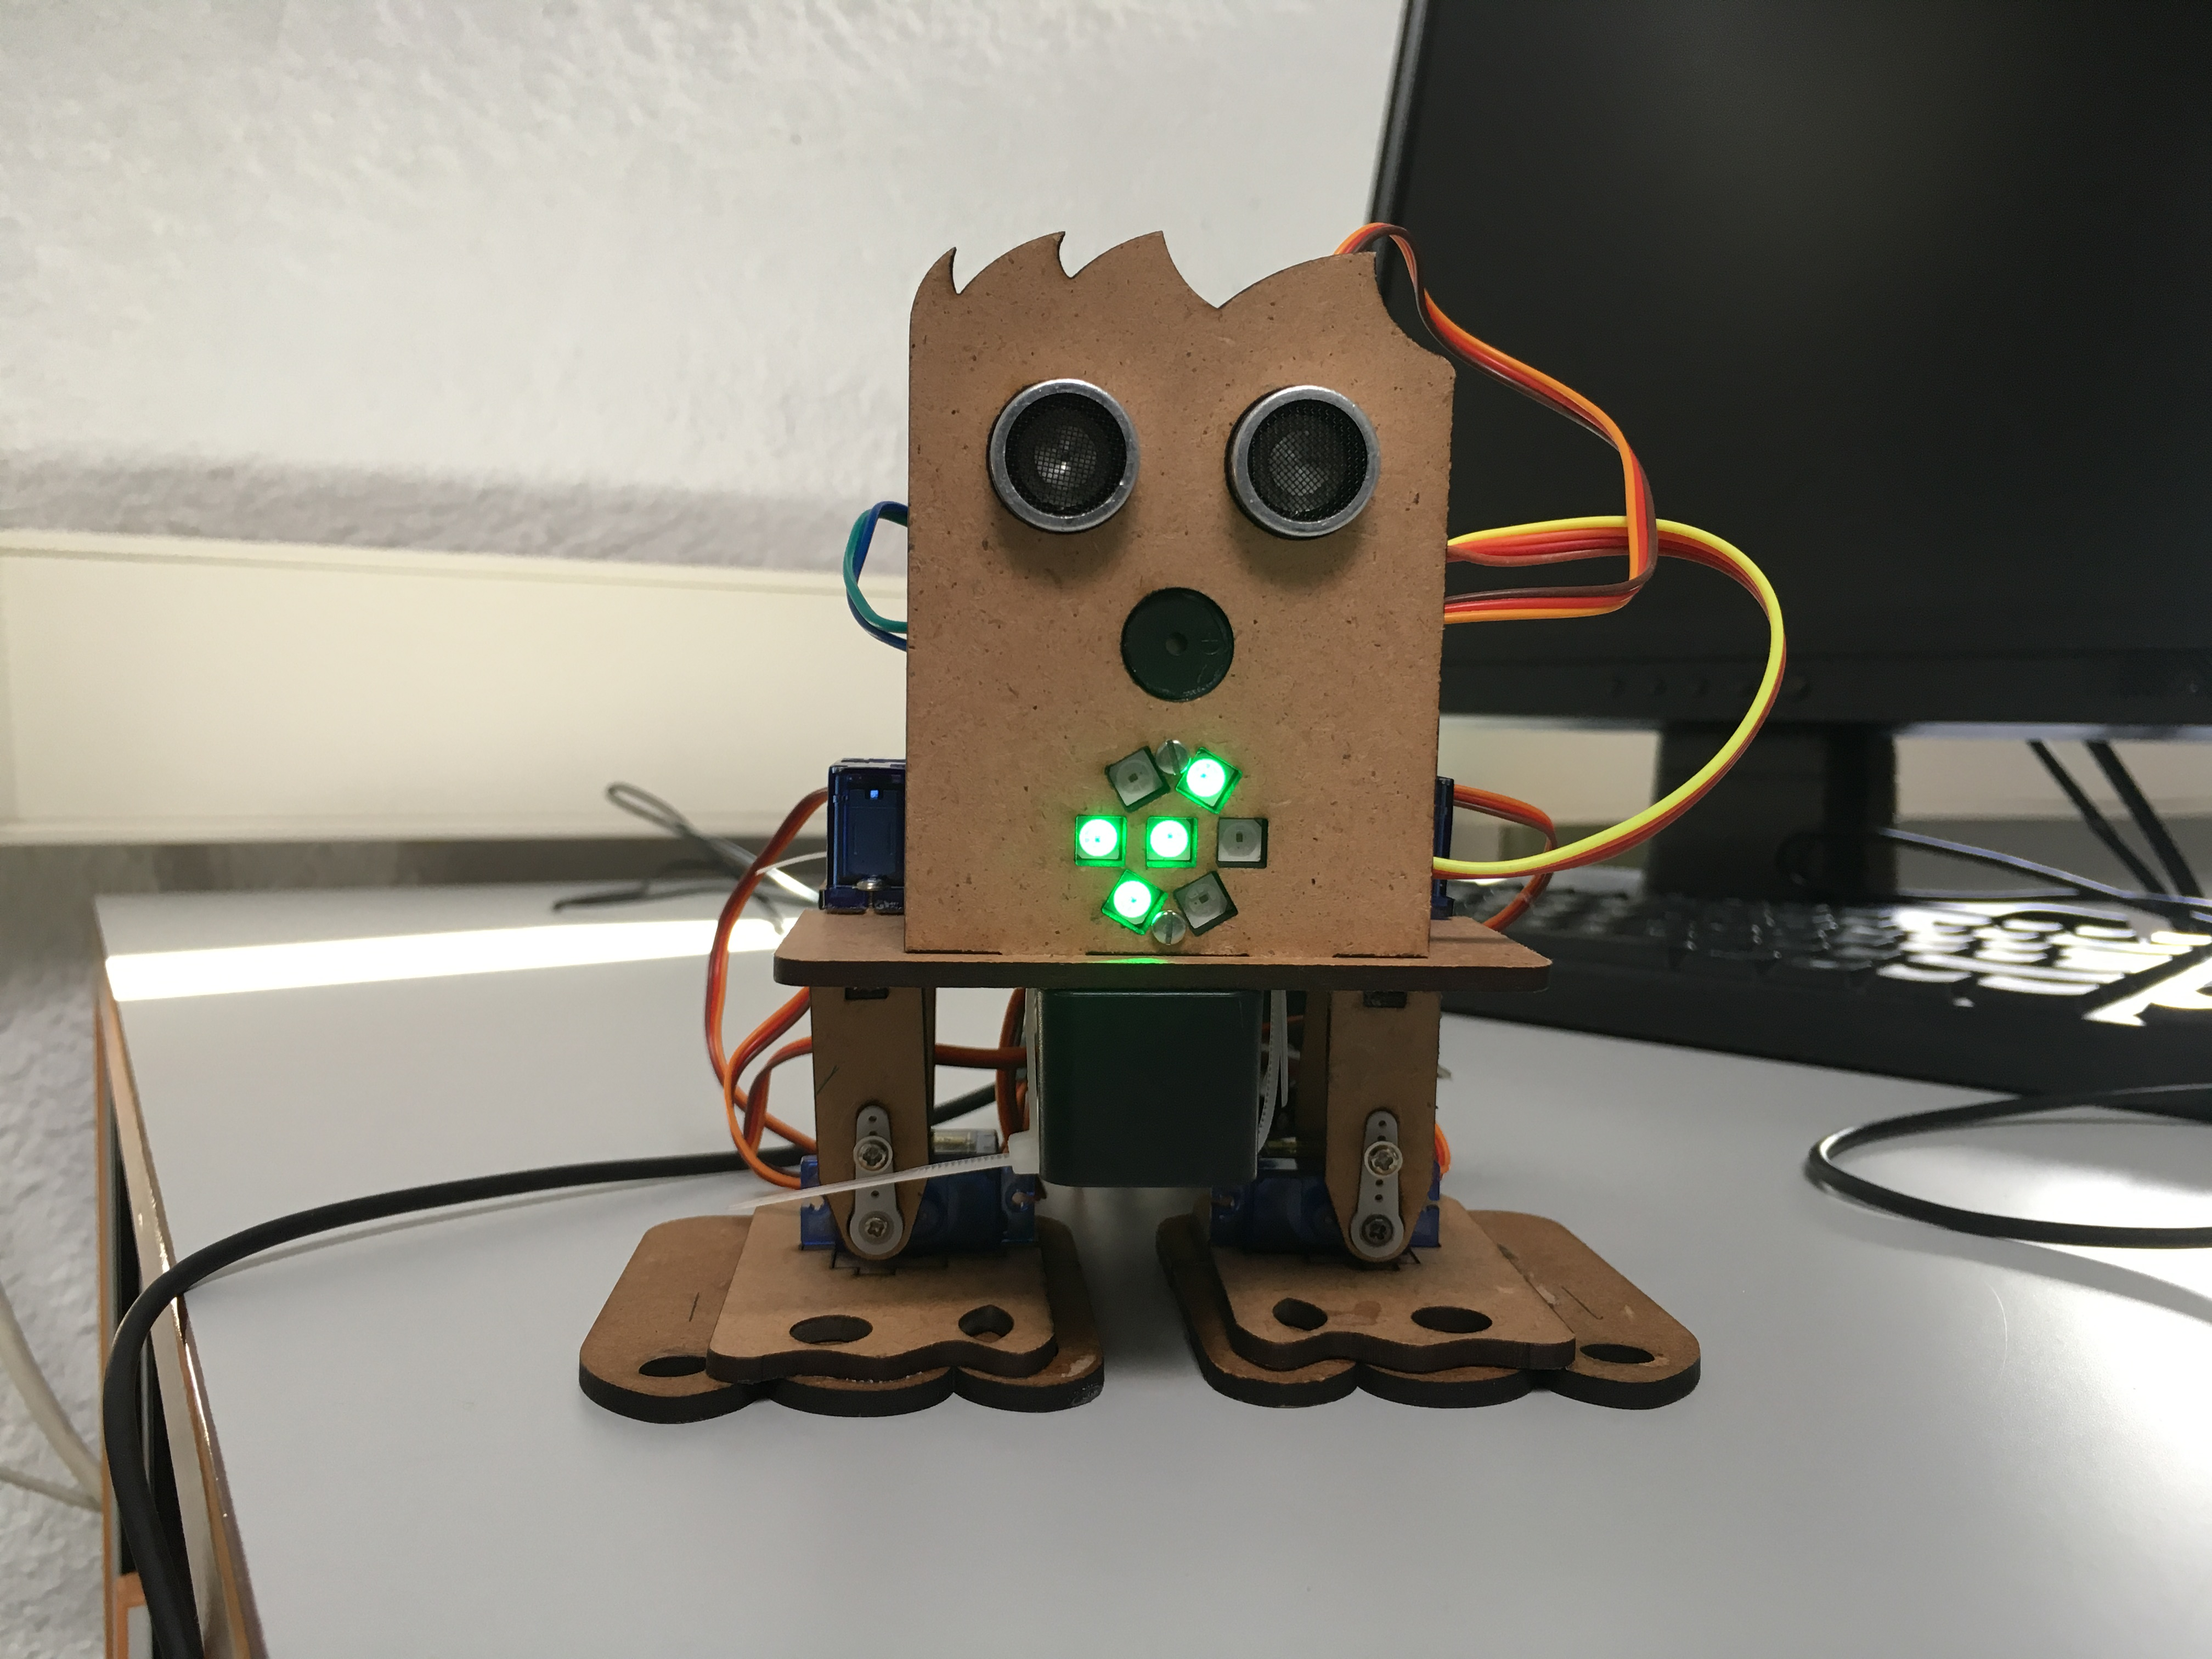 image of a cute robot